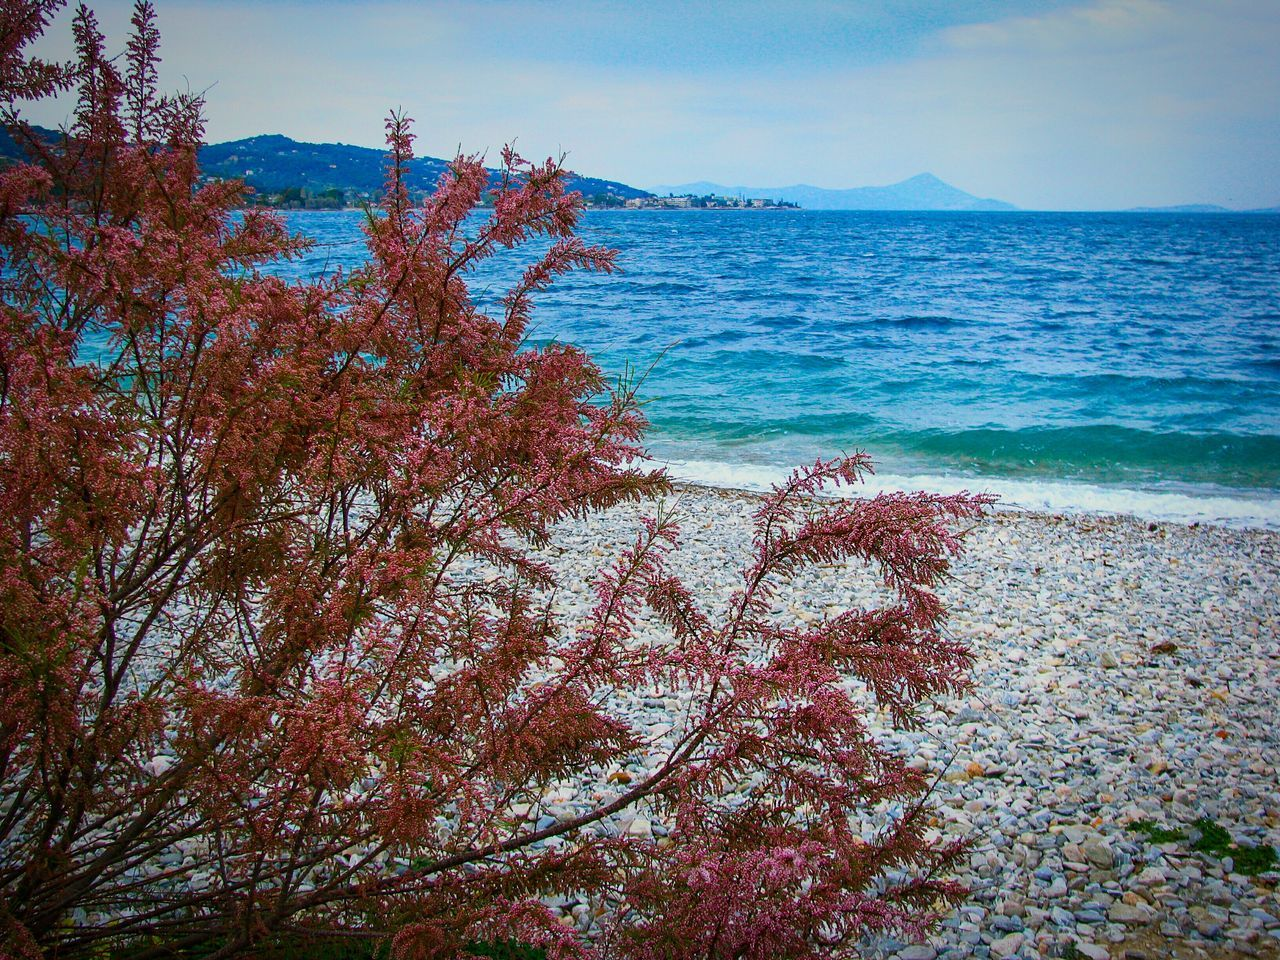 Tamarisk Tree EyeEm Diversity Art Is Everywhere Lonely Beach Shades Of Blue Blue Sea Sea Nature Beauty In Nature Water Scenics Tranquility Seascape Landscape Landscapes Pebble Beach Pebbles Beach Beach Photography Tree And Sea Blossom Red Blossom Blooming Red The Great Outdoors - 2017 EyeEm Awards